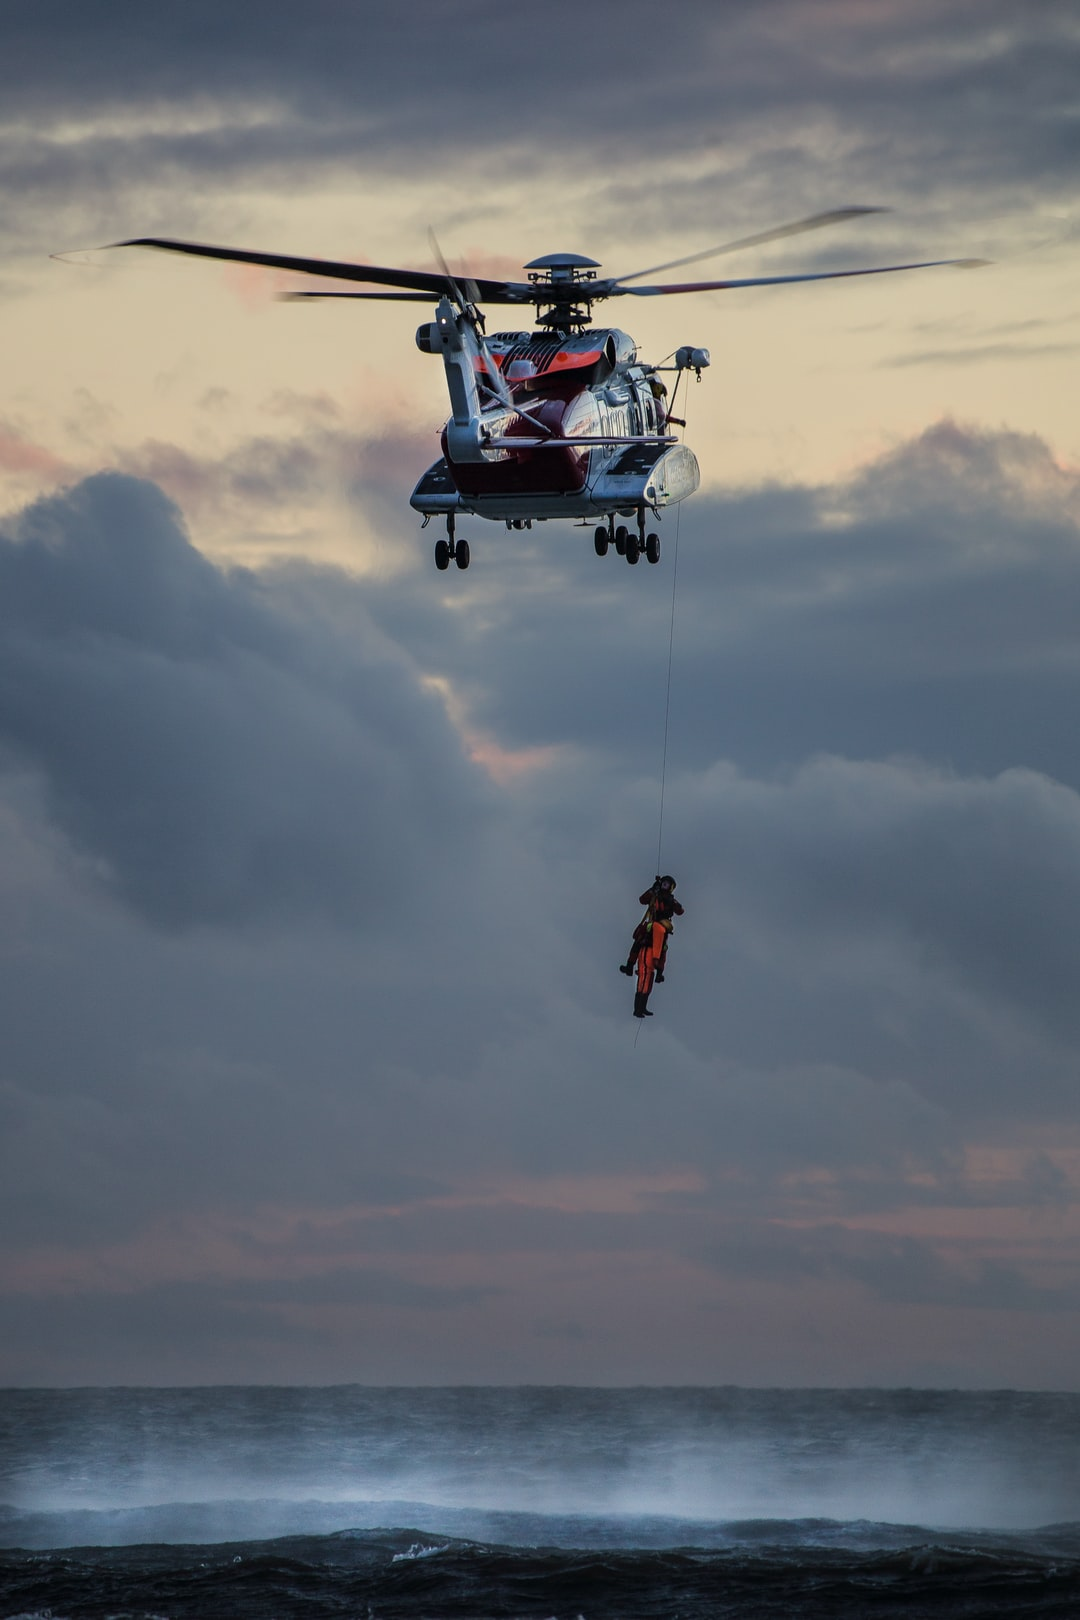 I went down to Dinas Dinlle beach near Caernarfon (North Wales) to try some long exposures of the waves and clouds. To my surprise a HM Coastguard training operation was taking place. In this photo you can see the winch-man and a dummy being lifted from the cold sea.